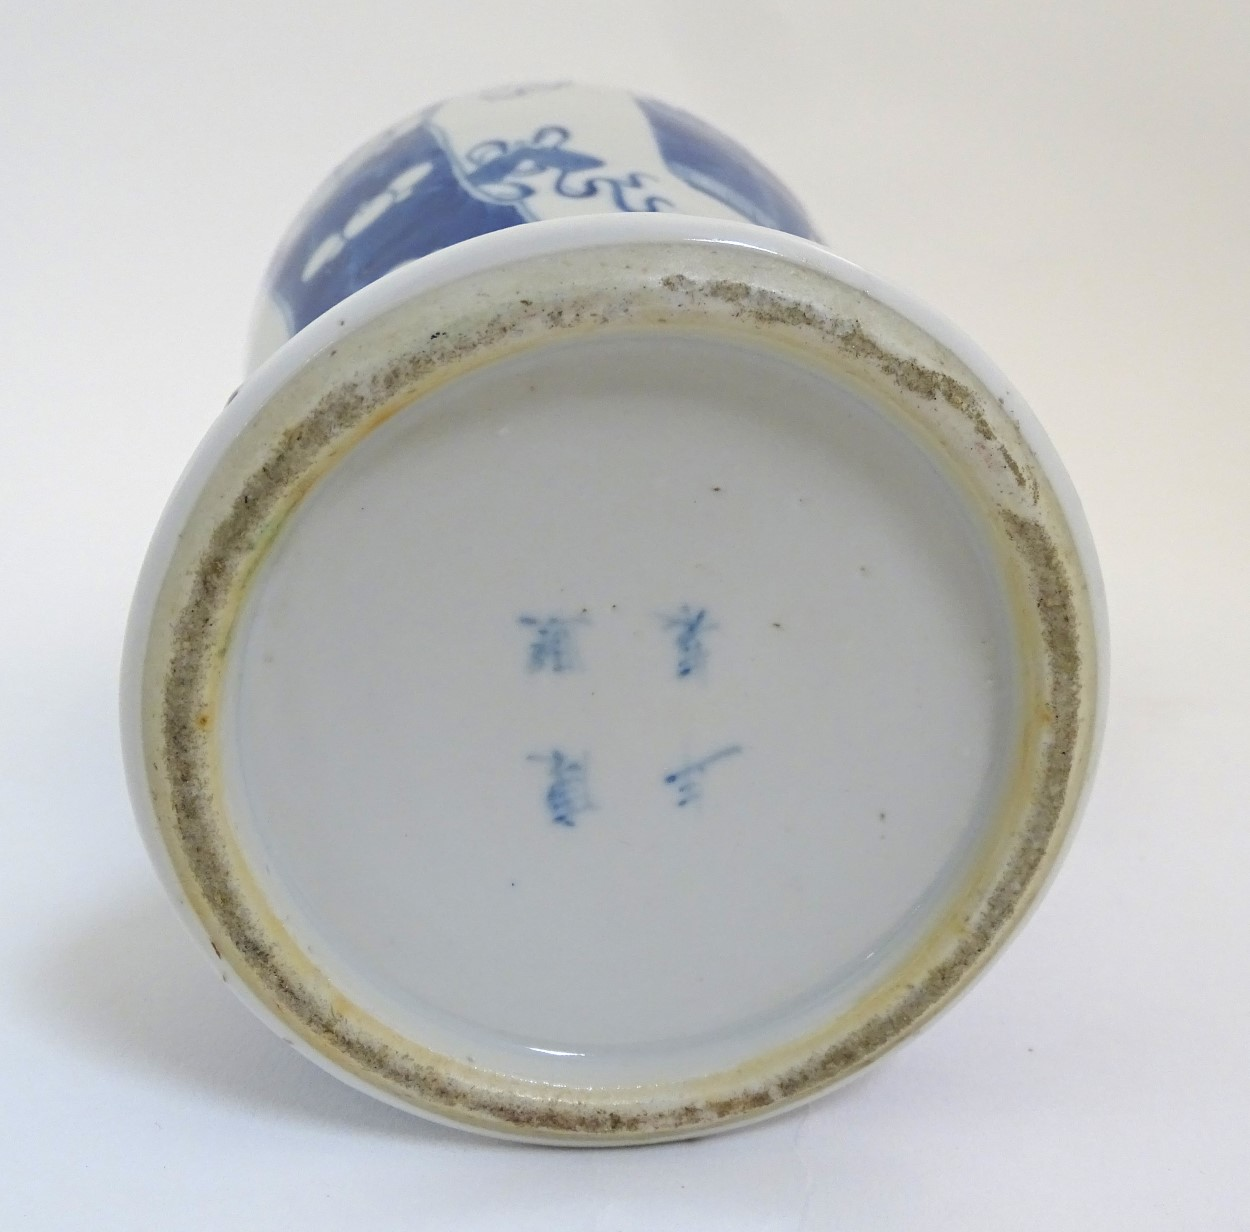 Lot 37 - A Chinese, blue and white baluster vase decorated with prunus flowers,